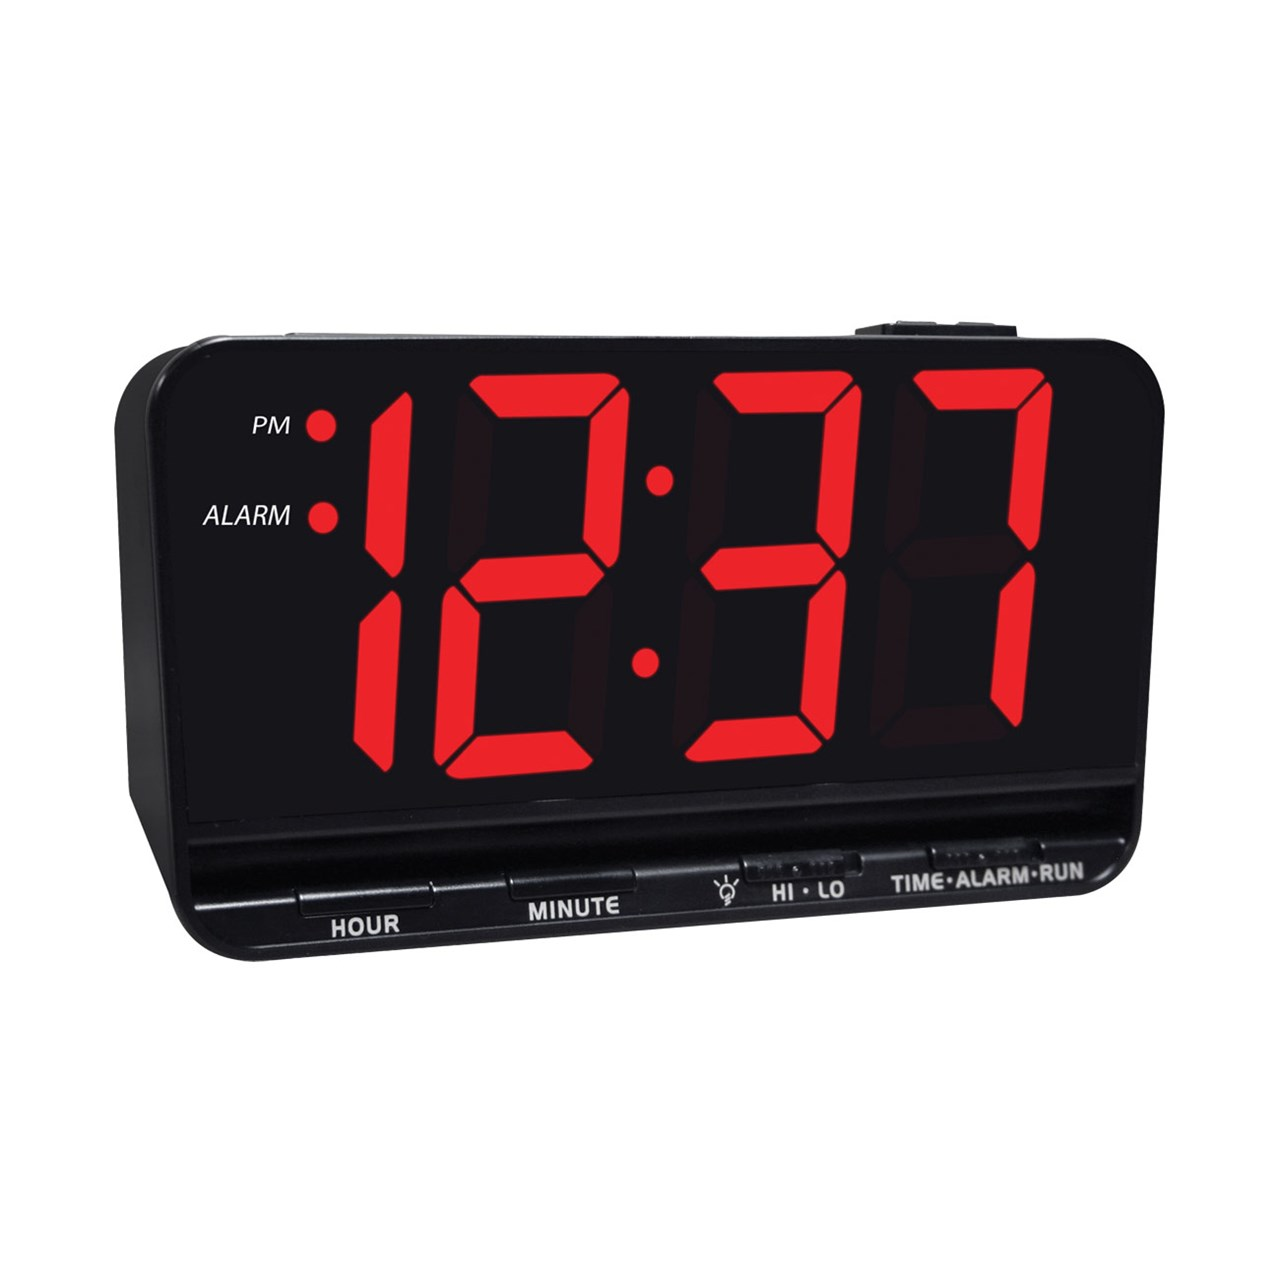 Maxiaids low vision clocks blind accessories large display clock jumbo display digital alarm clock with 3 inch led amipublicfo Image collections